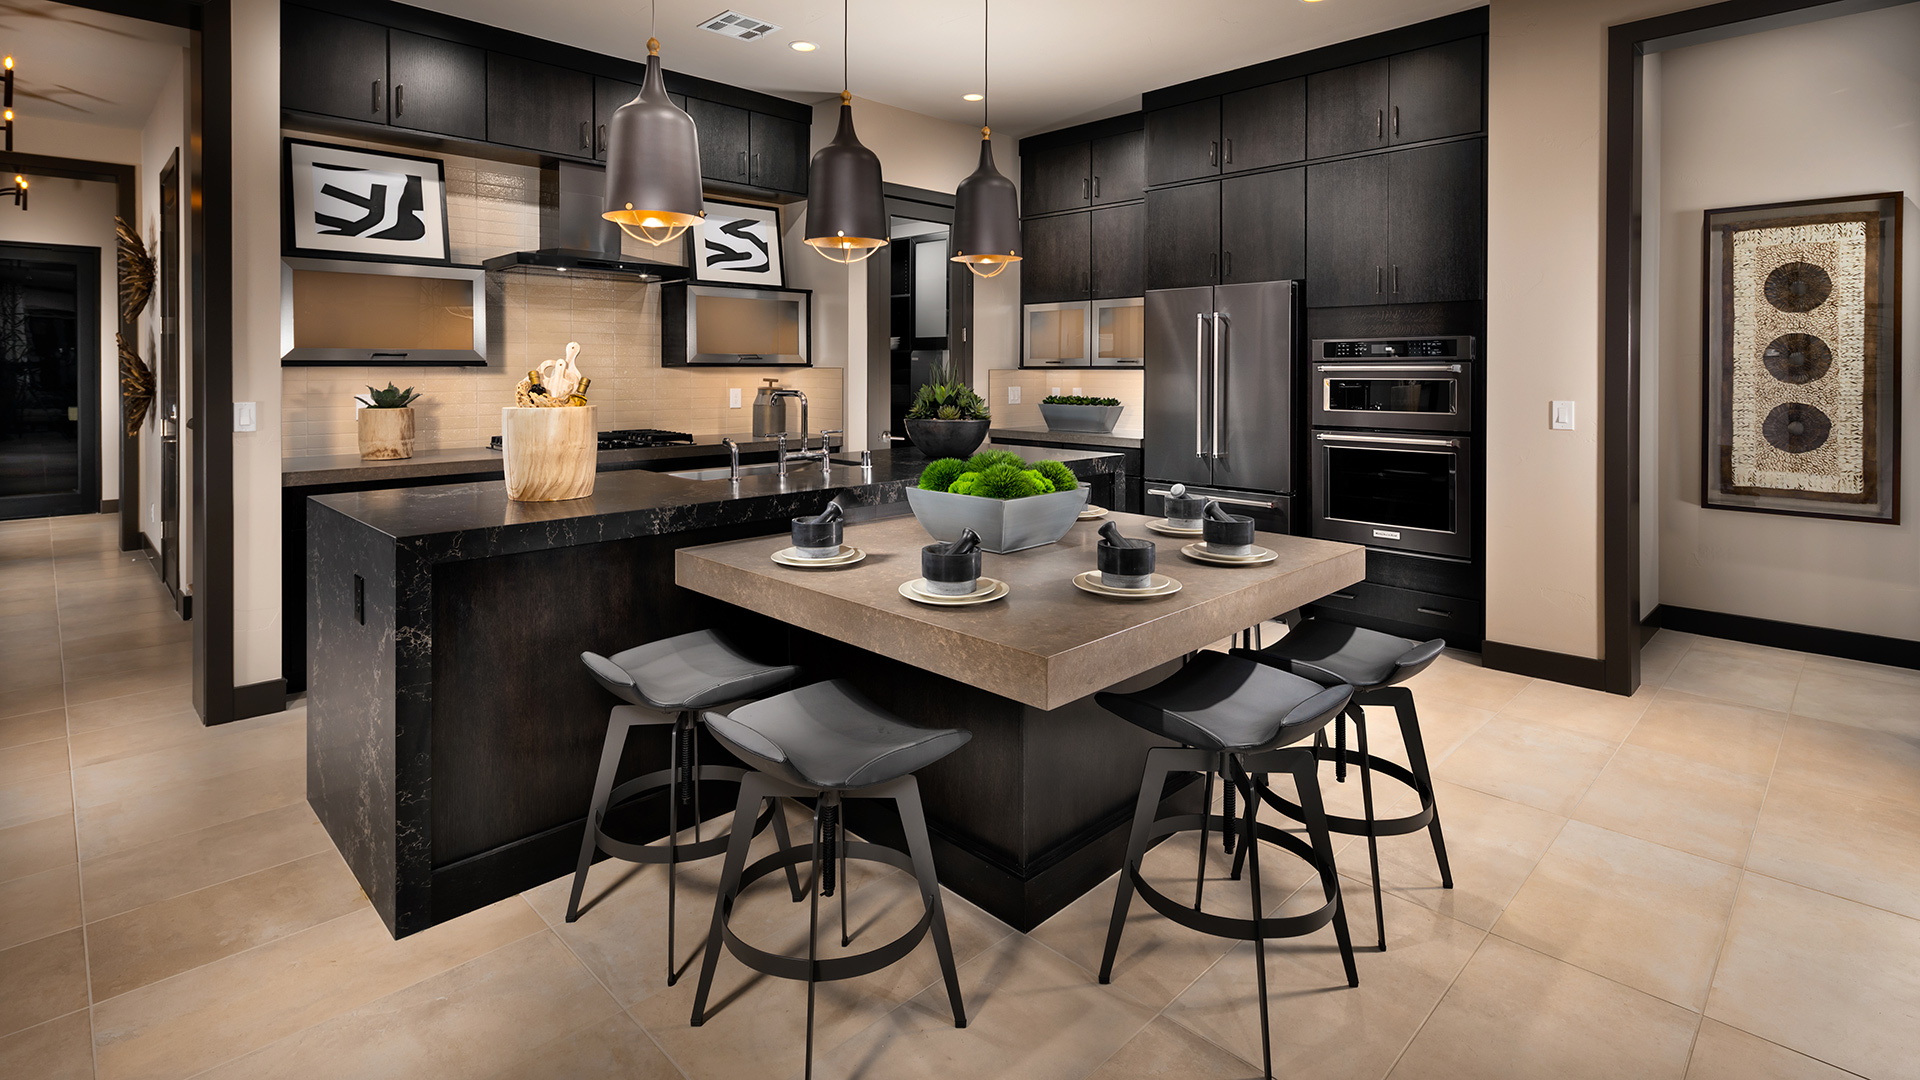 Create a show-stopping kitchen with the help of our designers at the Las Vegas Design Studio